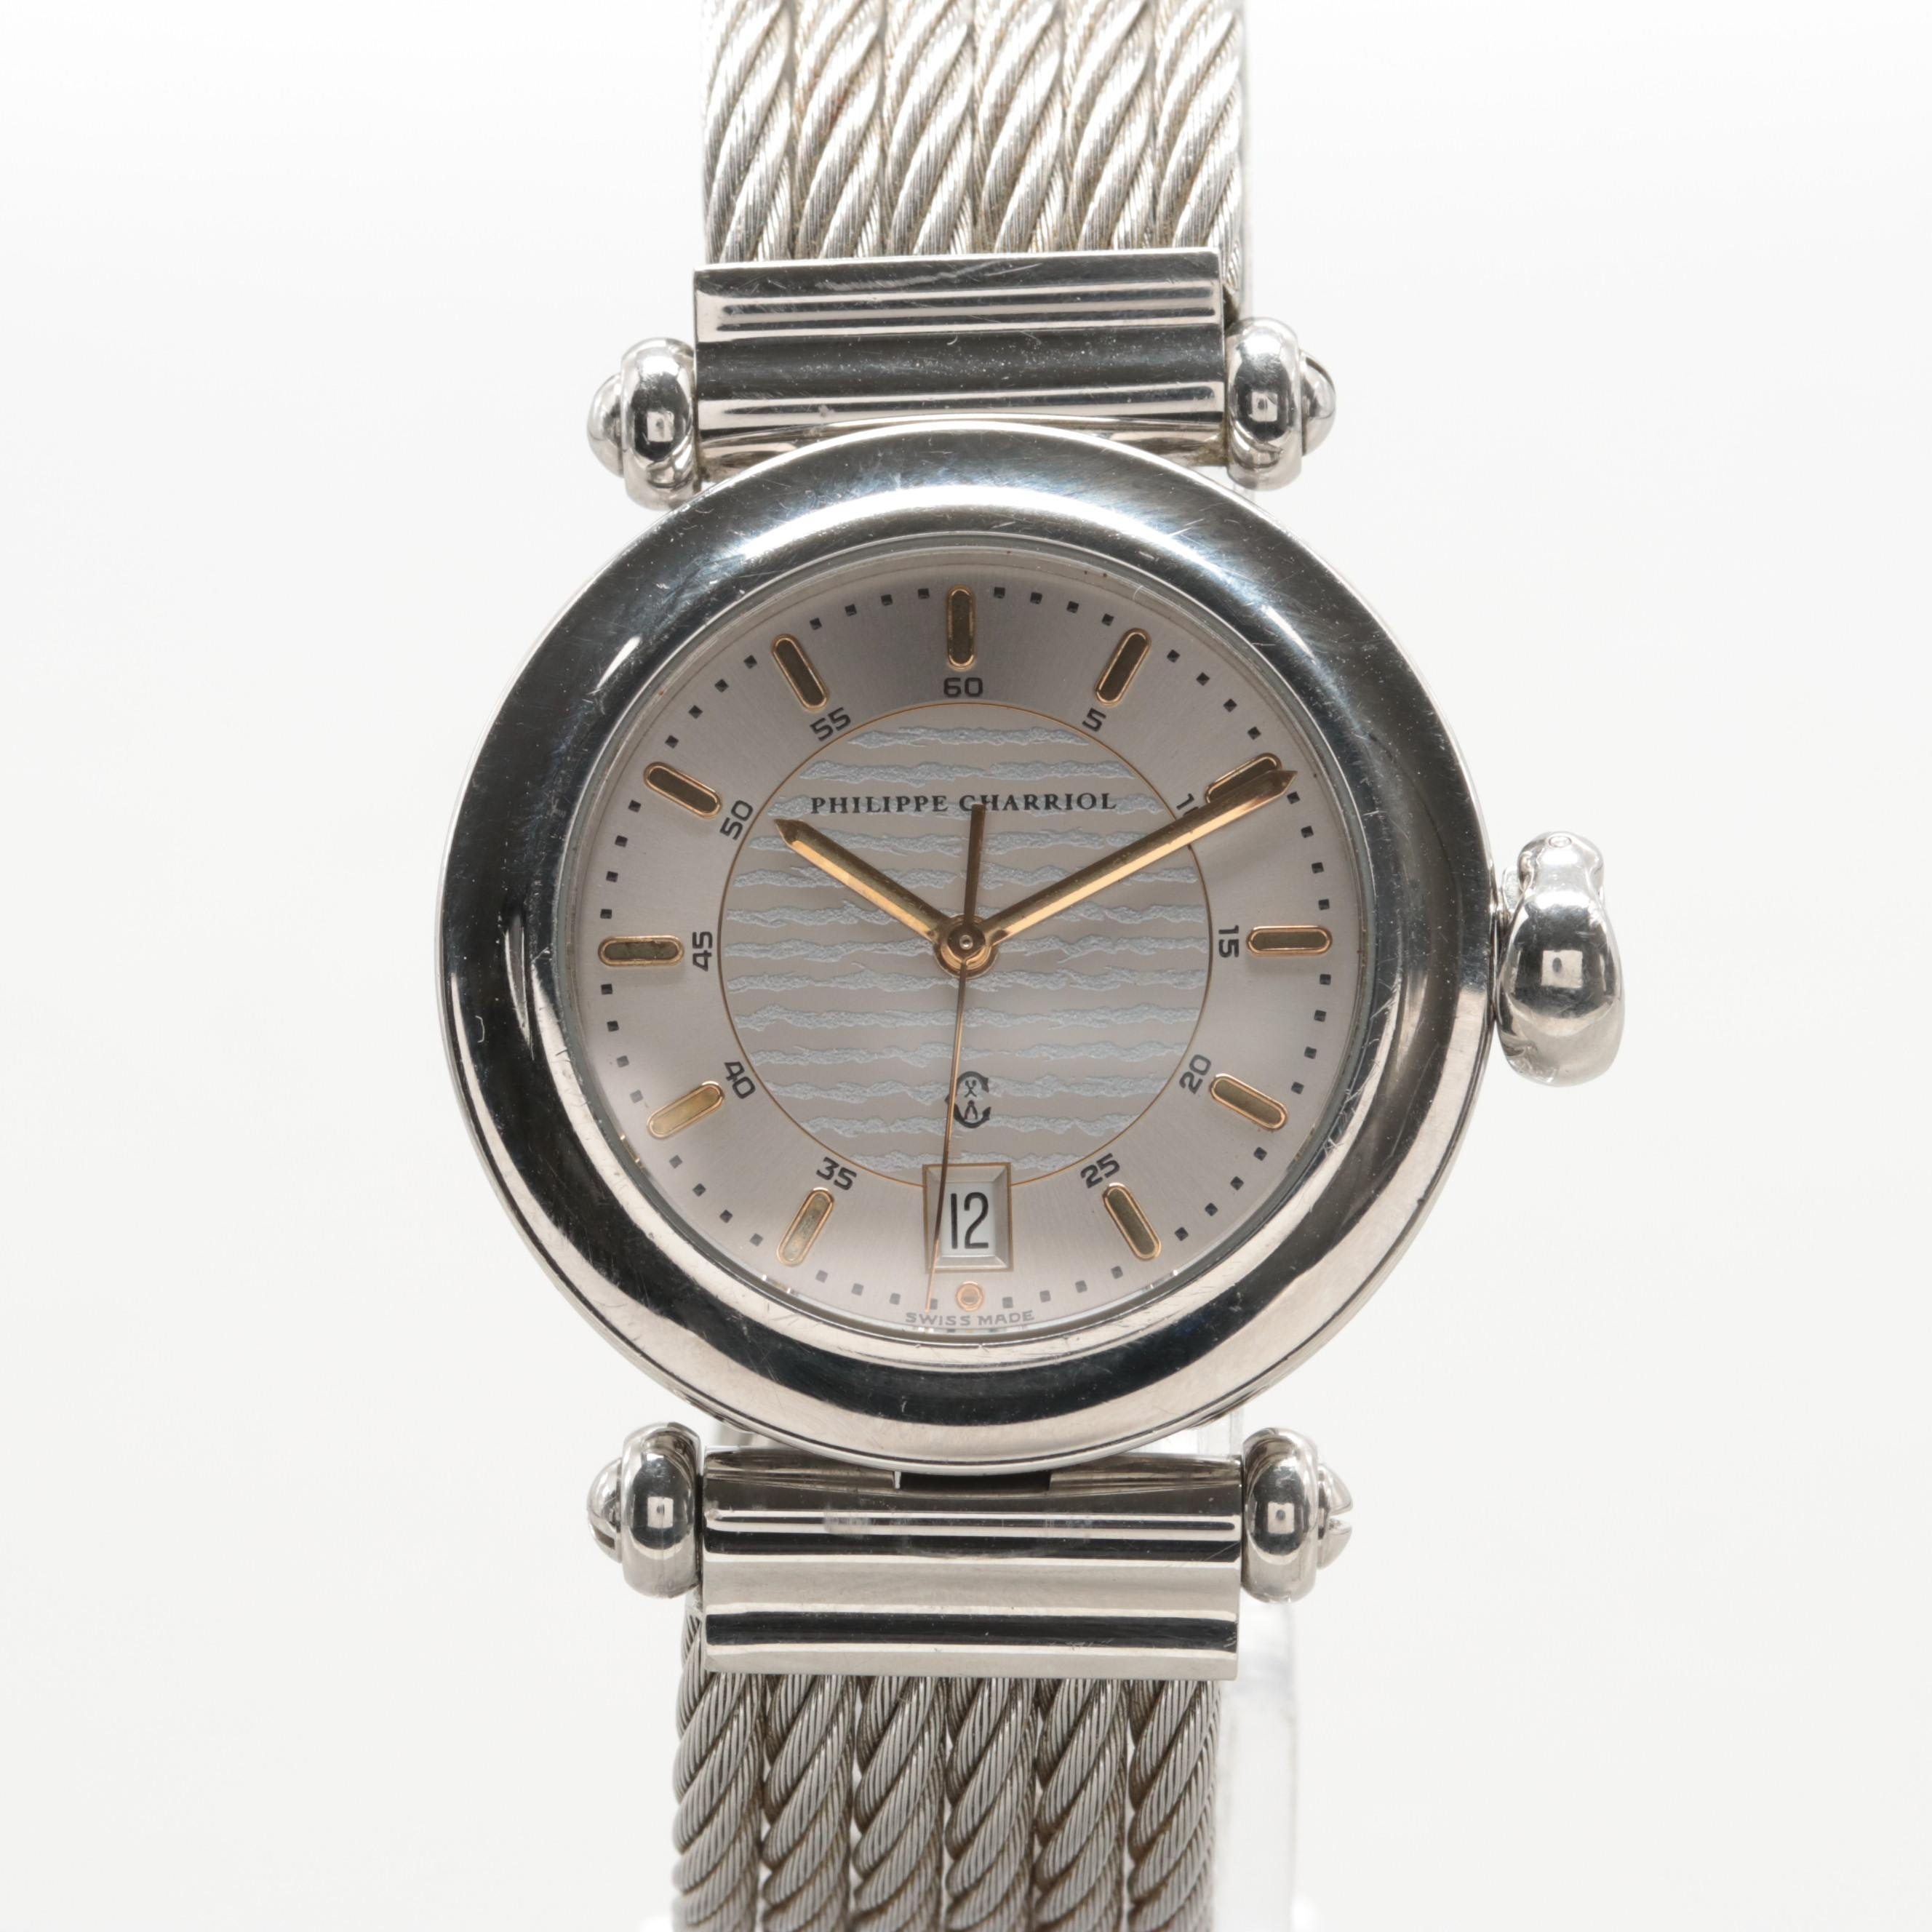 Philippe Charriol Stainless Steel Wristwatch With Date Window